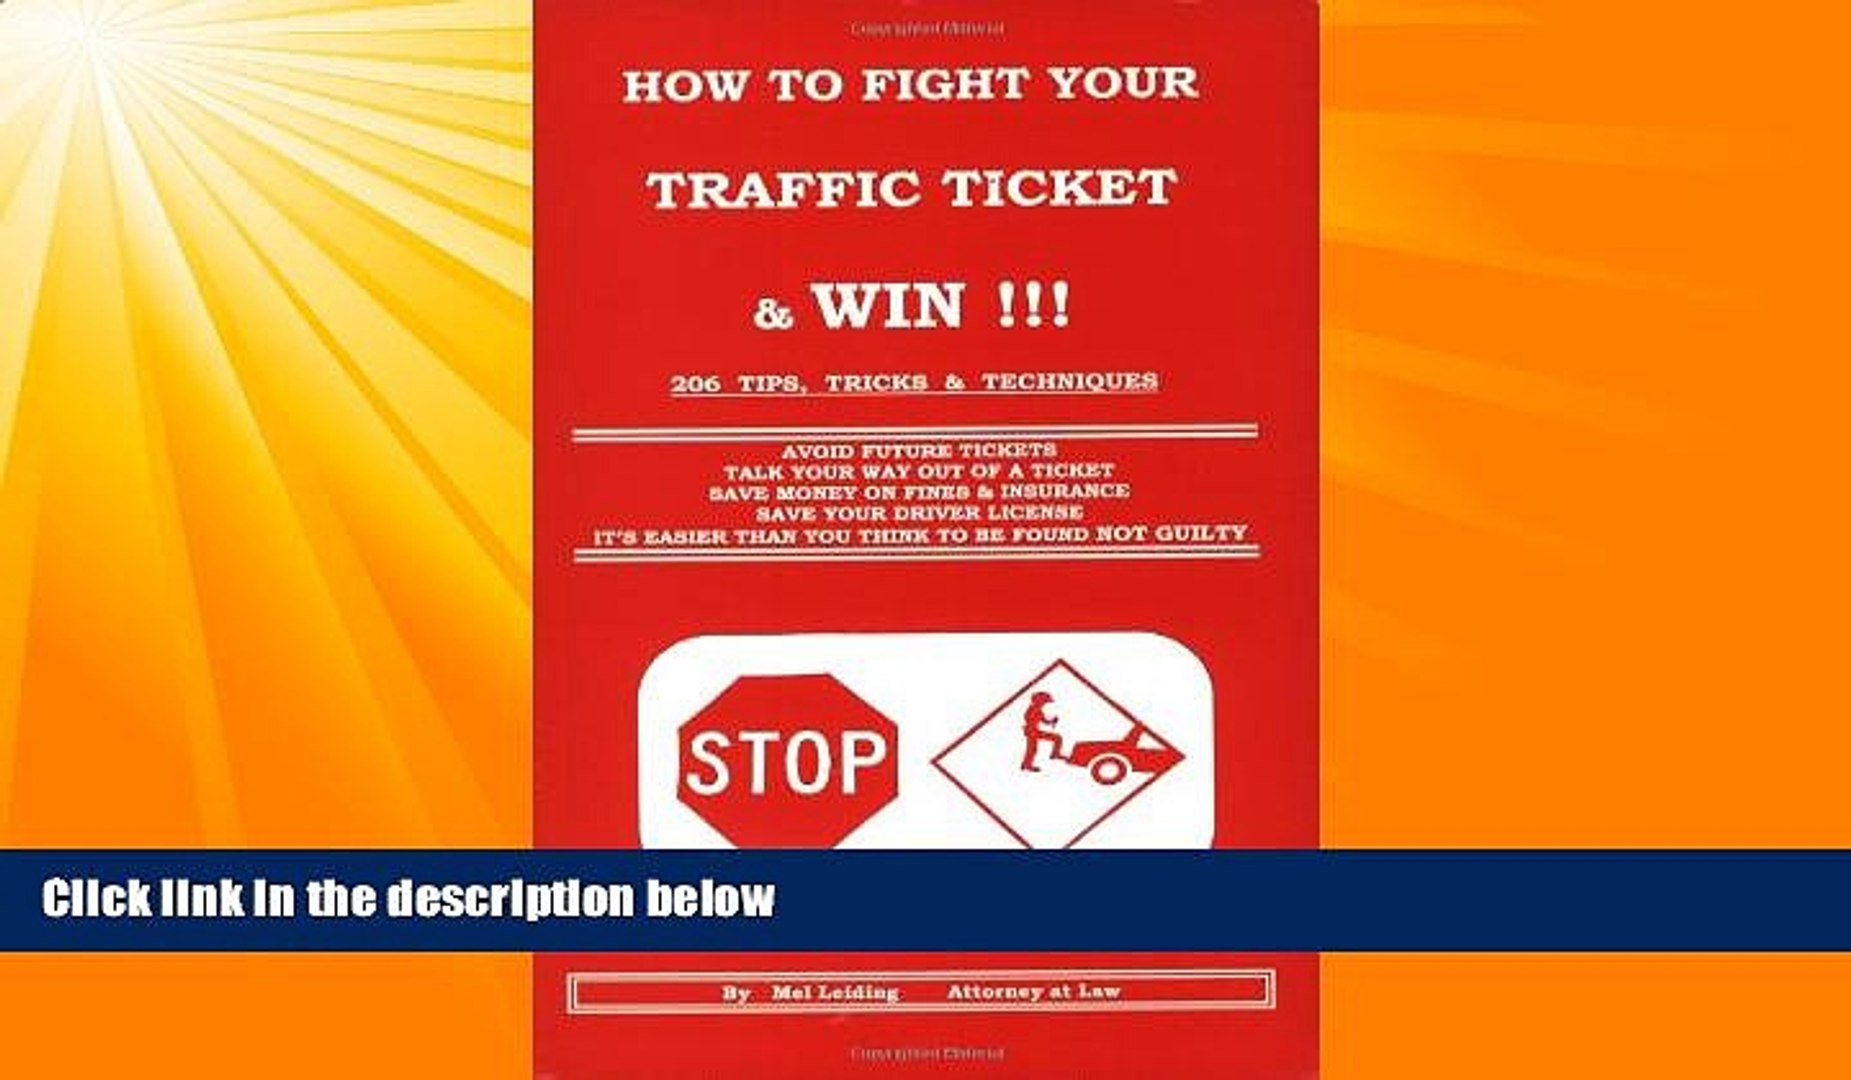 different   How to Fight Your Traffic Ticket and Win!: 206 Tips Tricks and Techniques